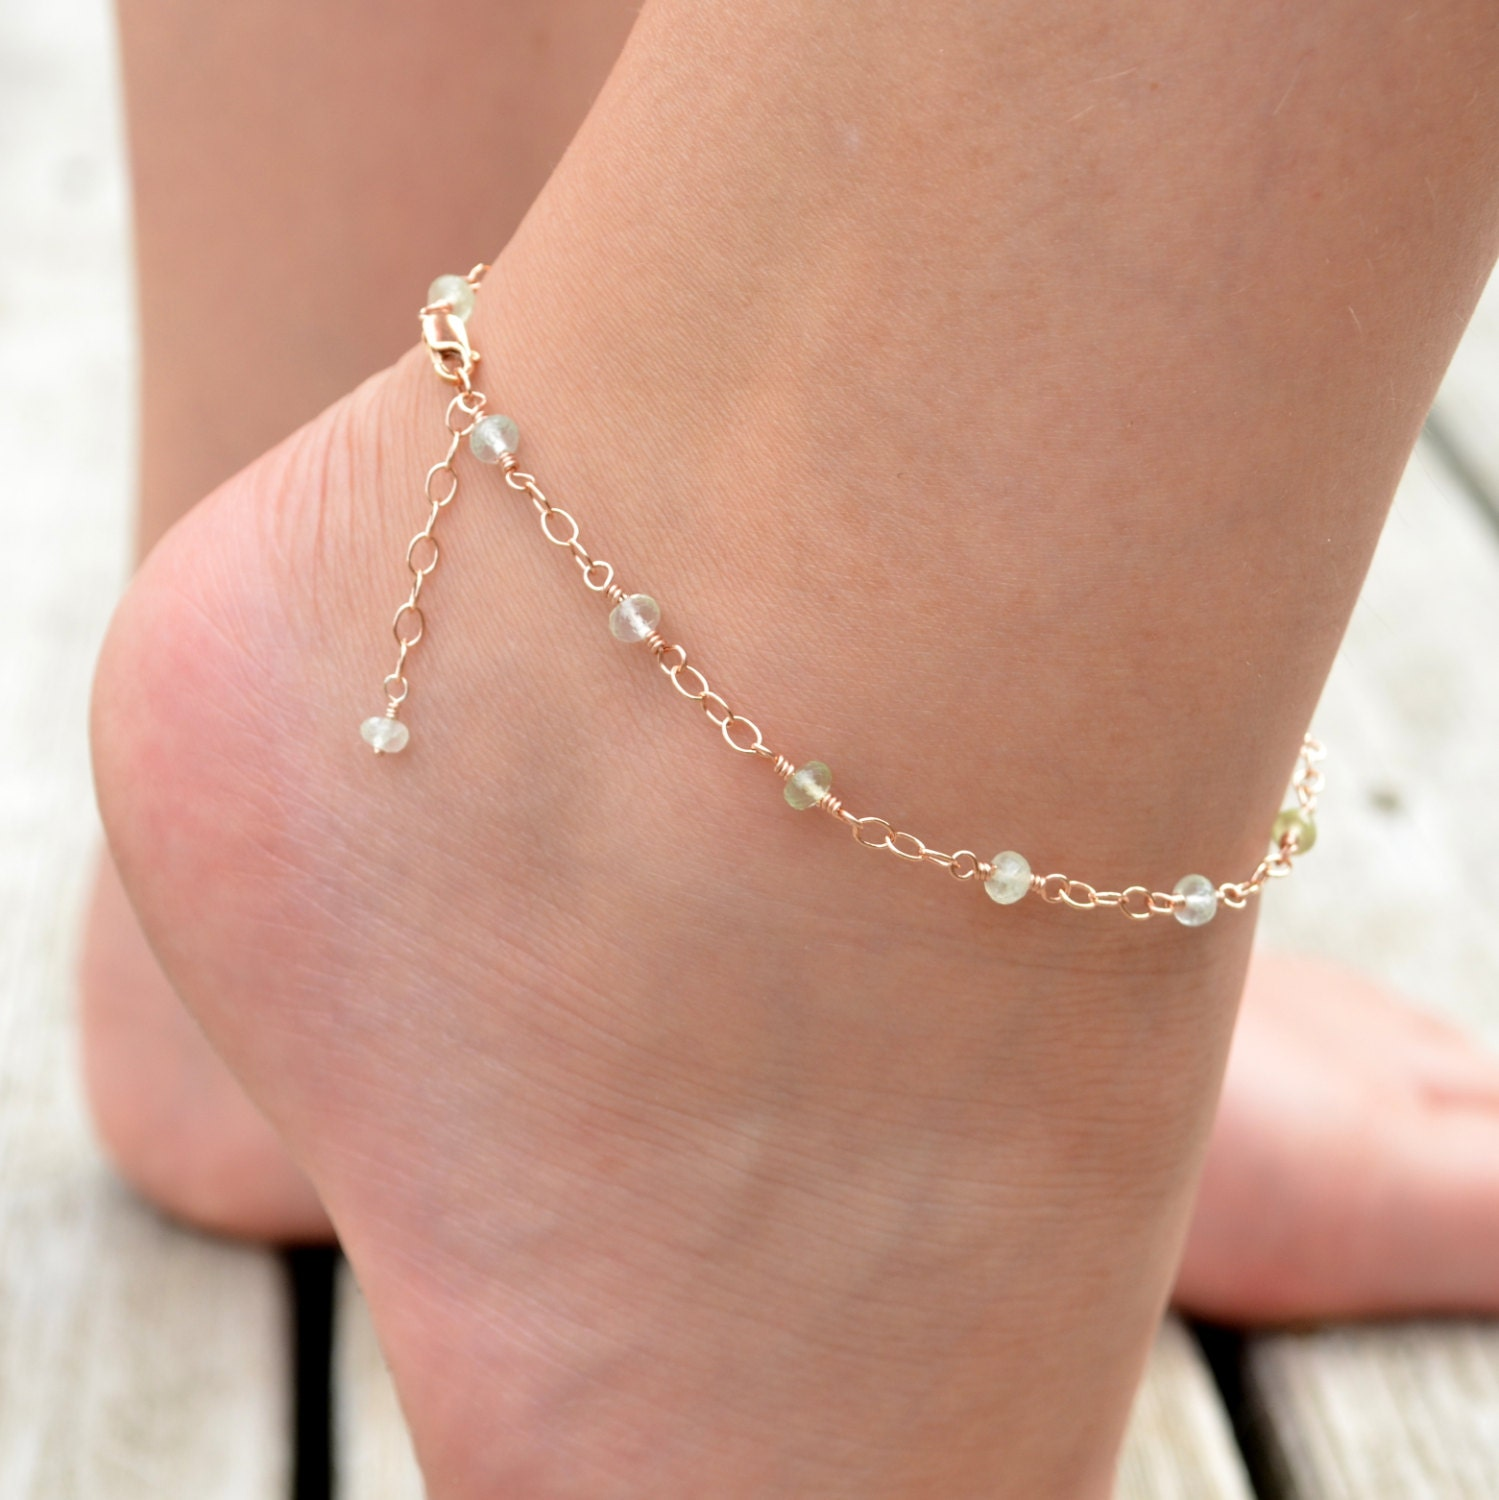 inflow inflowcomponent layer technicalissues foot s chain global ankle anklet pendant double res p gold women beads bracelet content rose